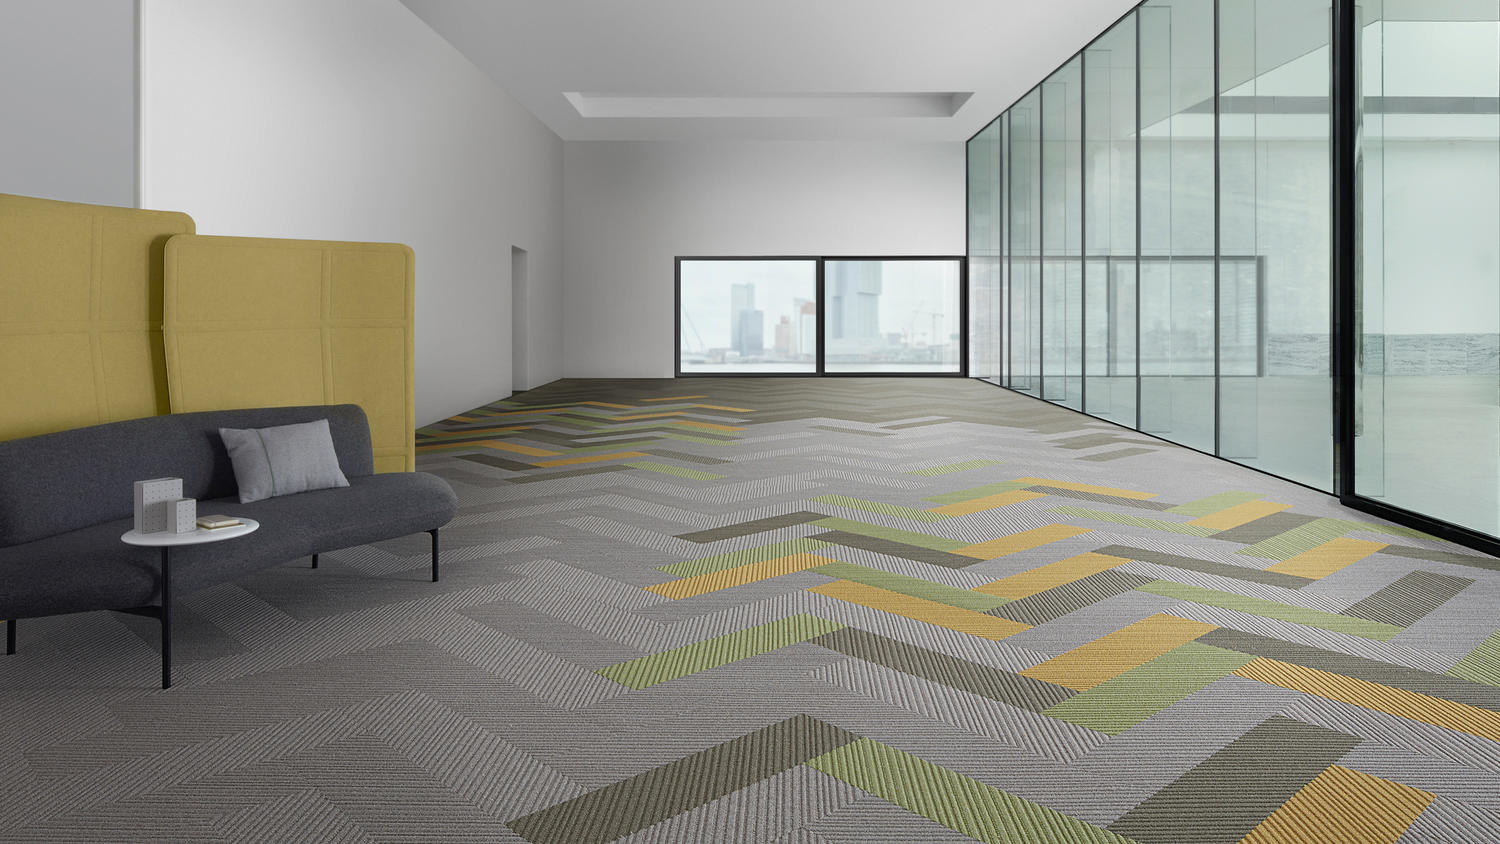 Tarkett Holding Gmbh Desso Carpet Rolls And Tiles - Tarkett | Tarkett